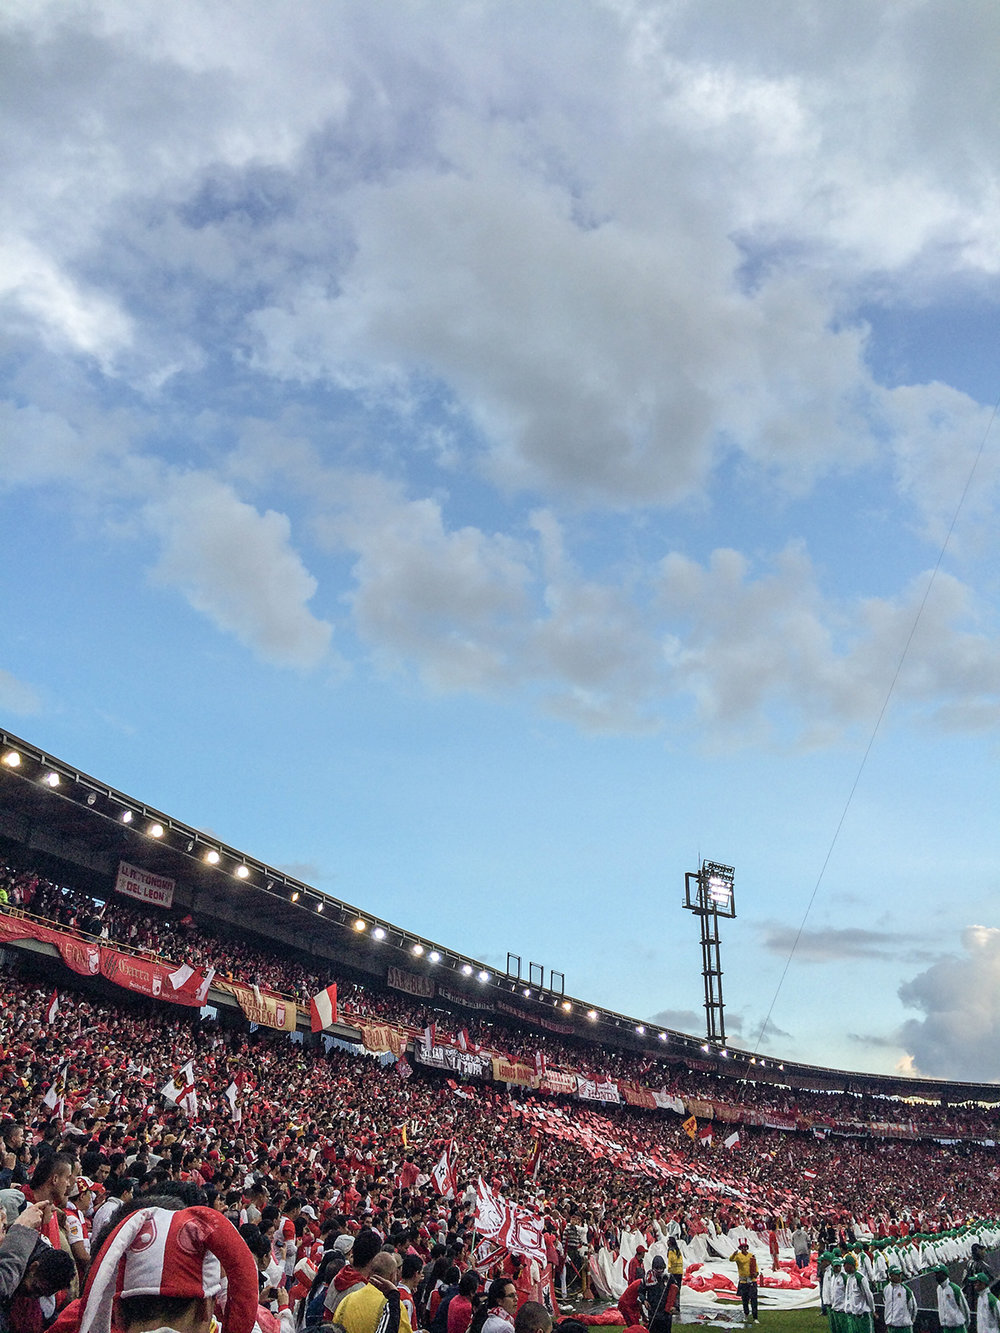 We arrived at the stadium 4 hours before the kickoff. As you can see, it was already packed.